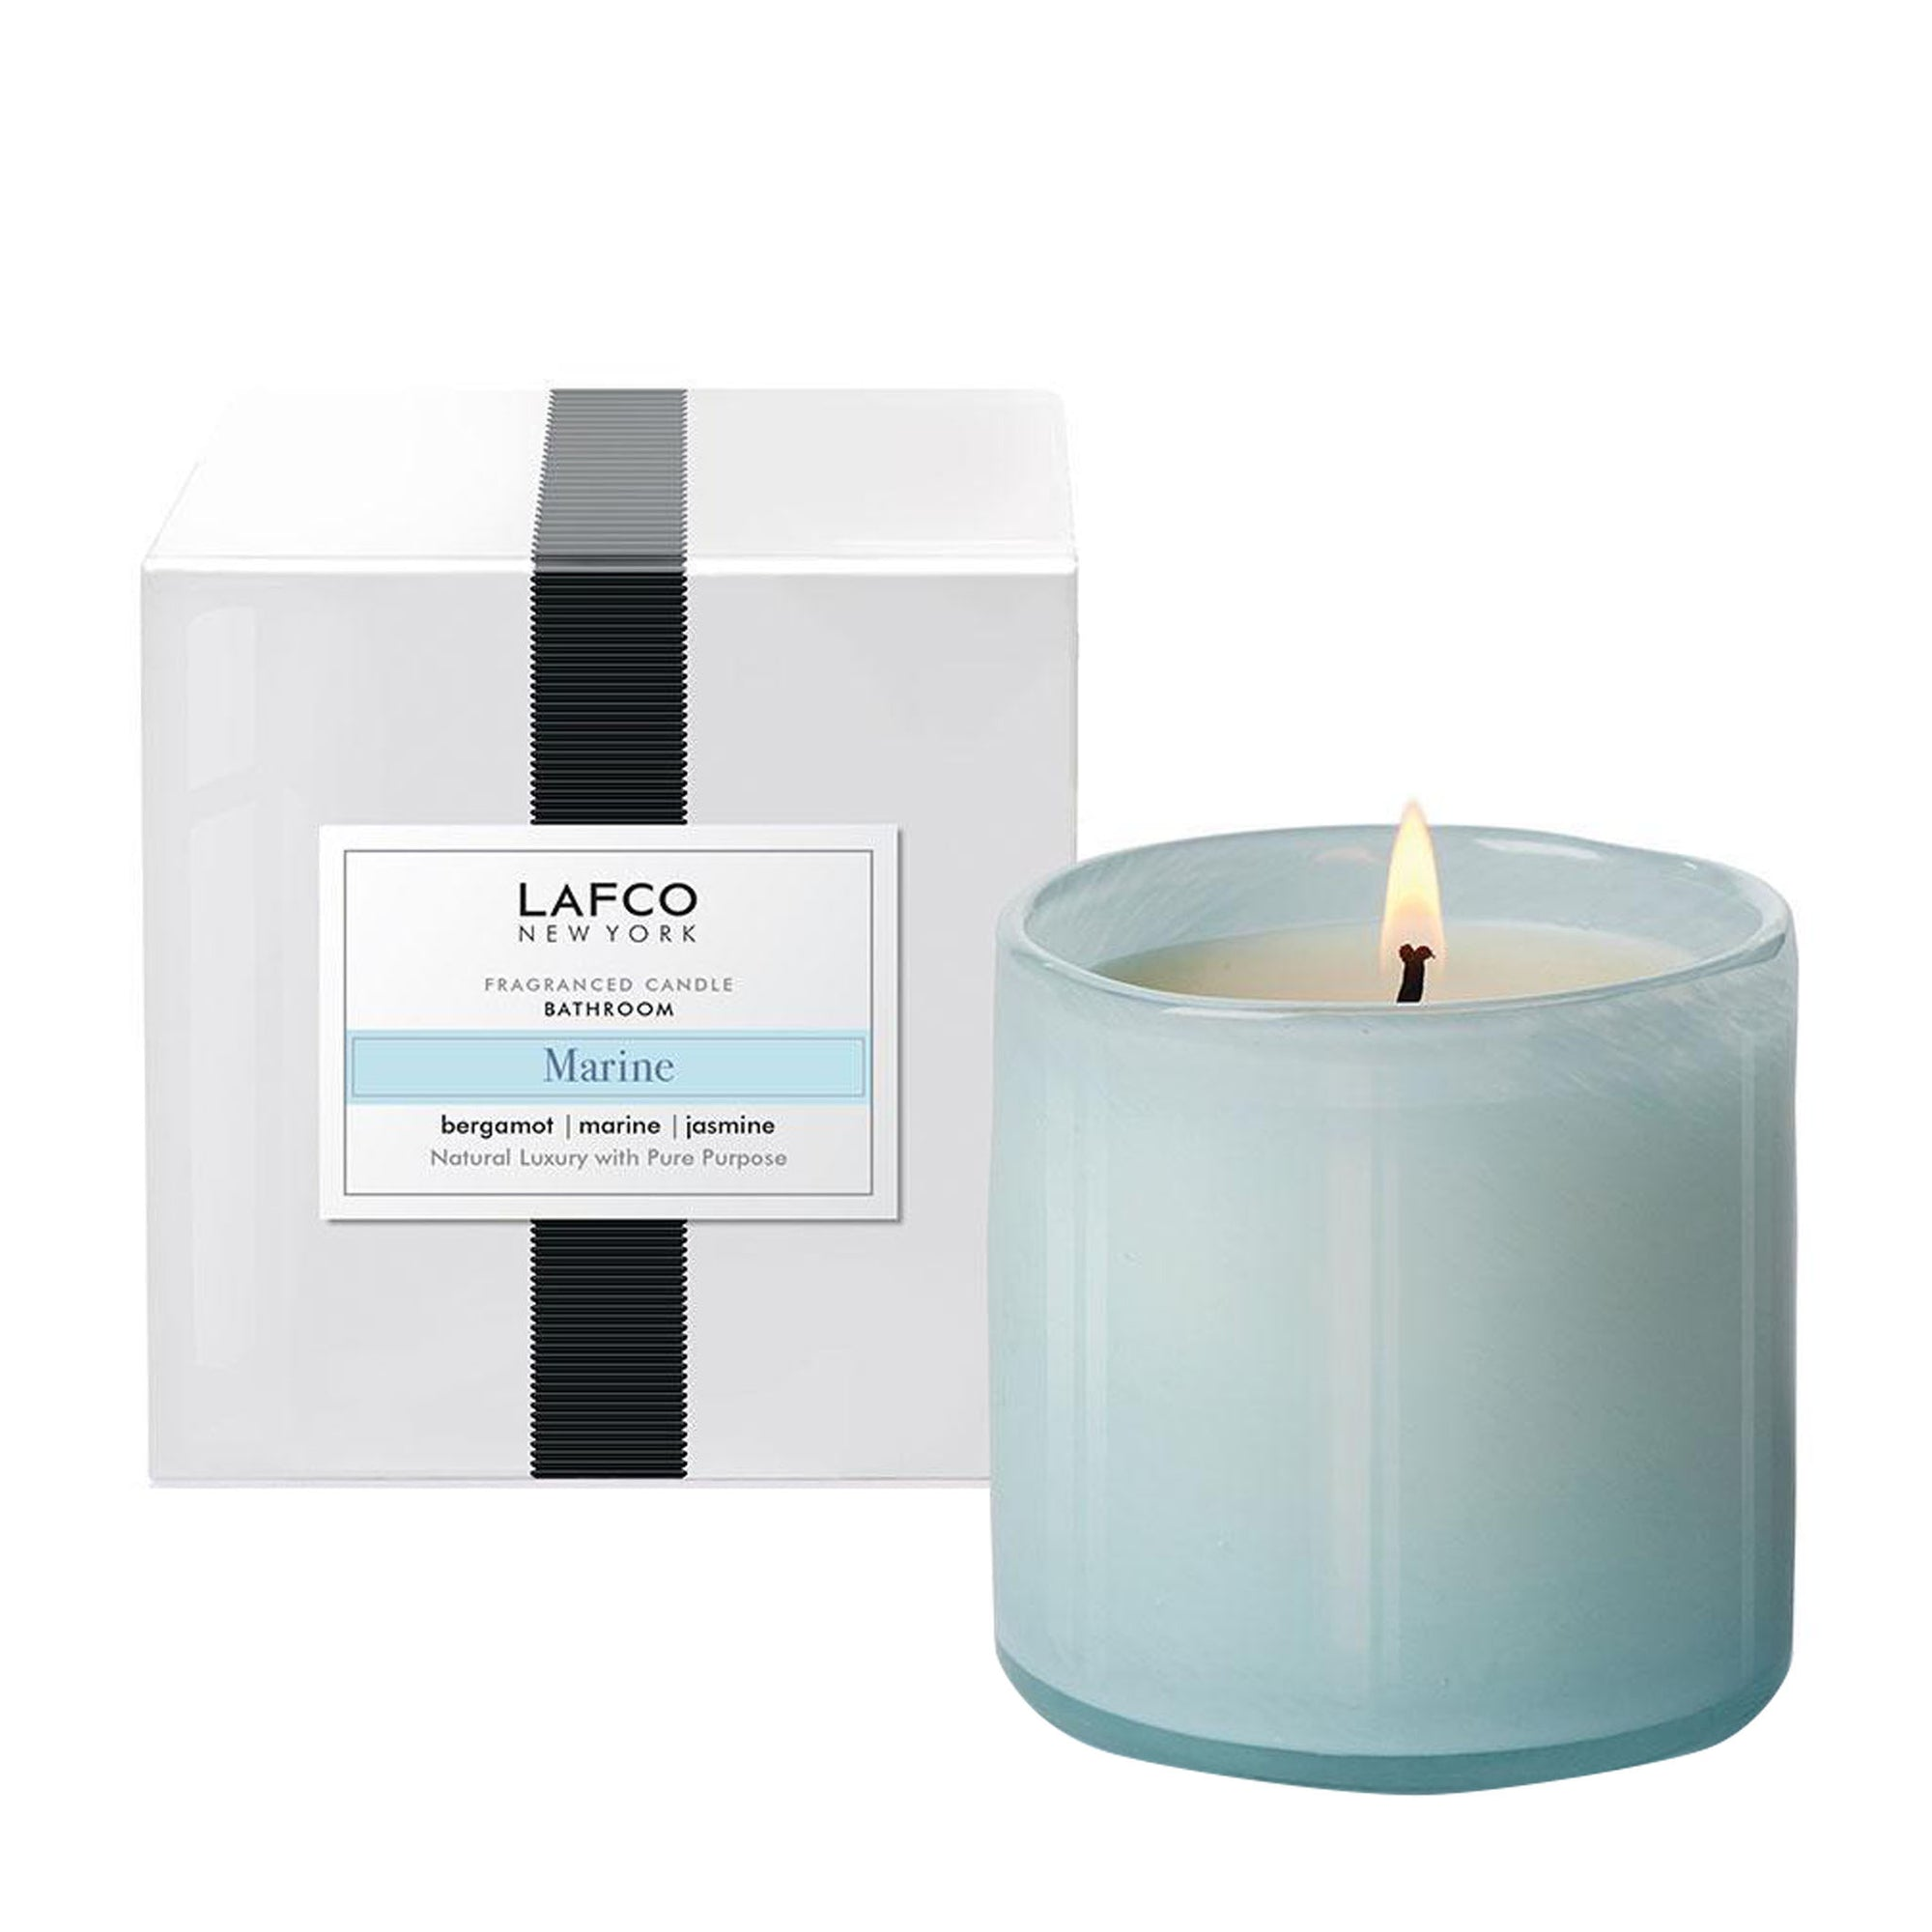 Lafco Bathroom | Marine Candle